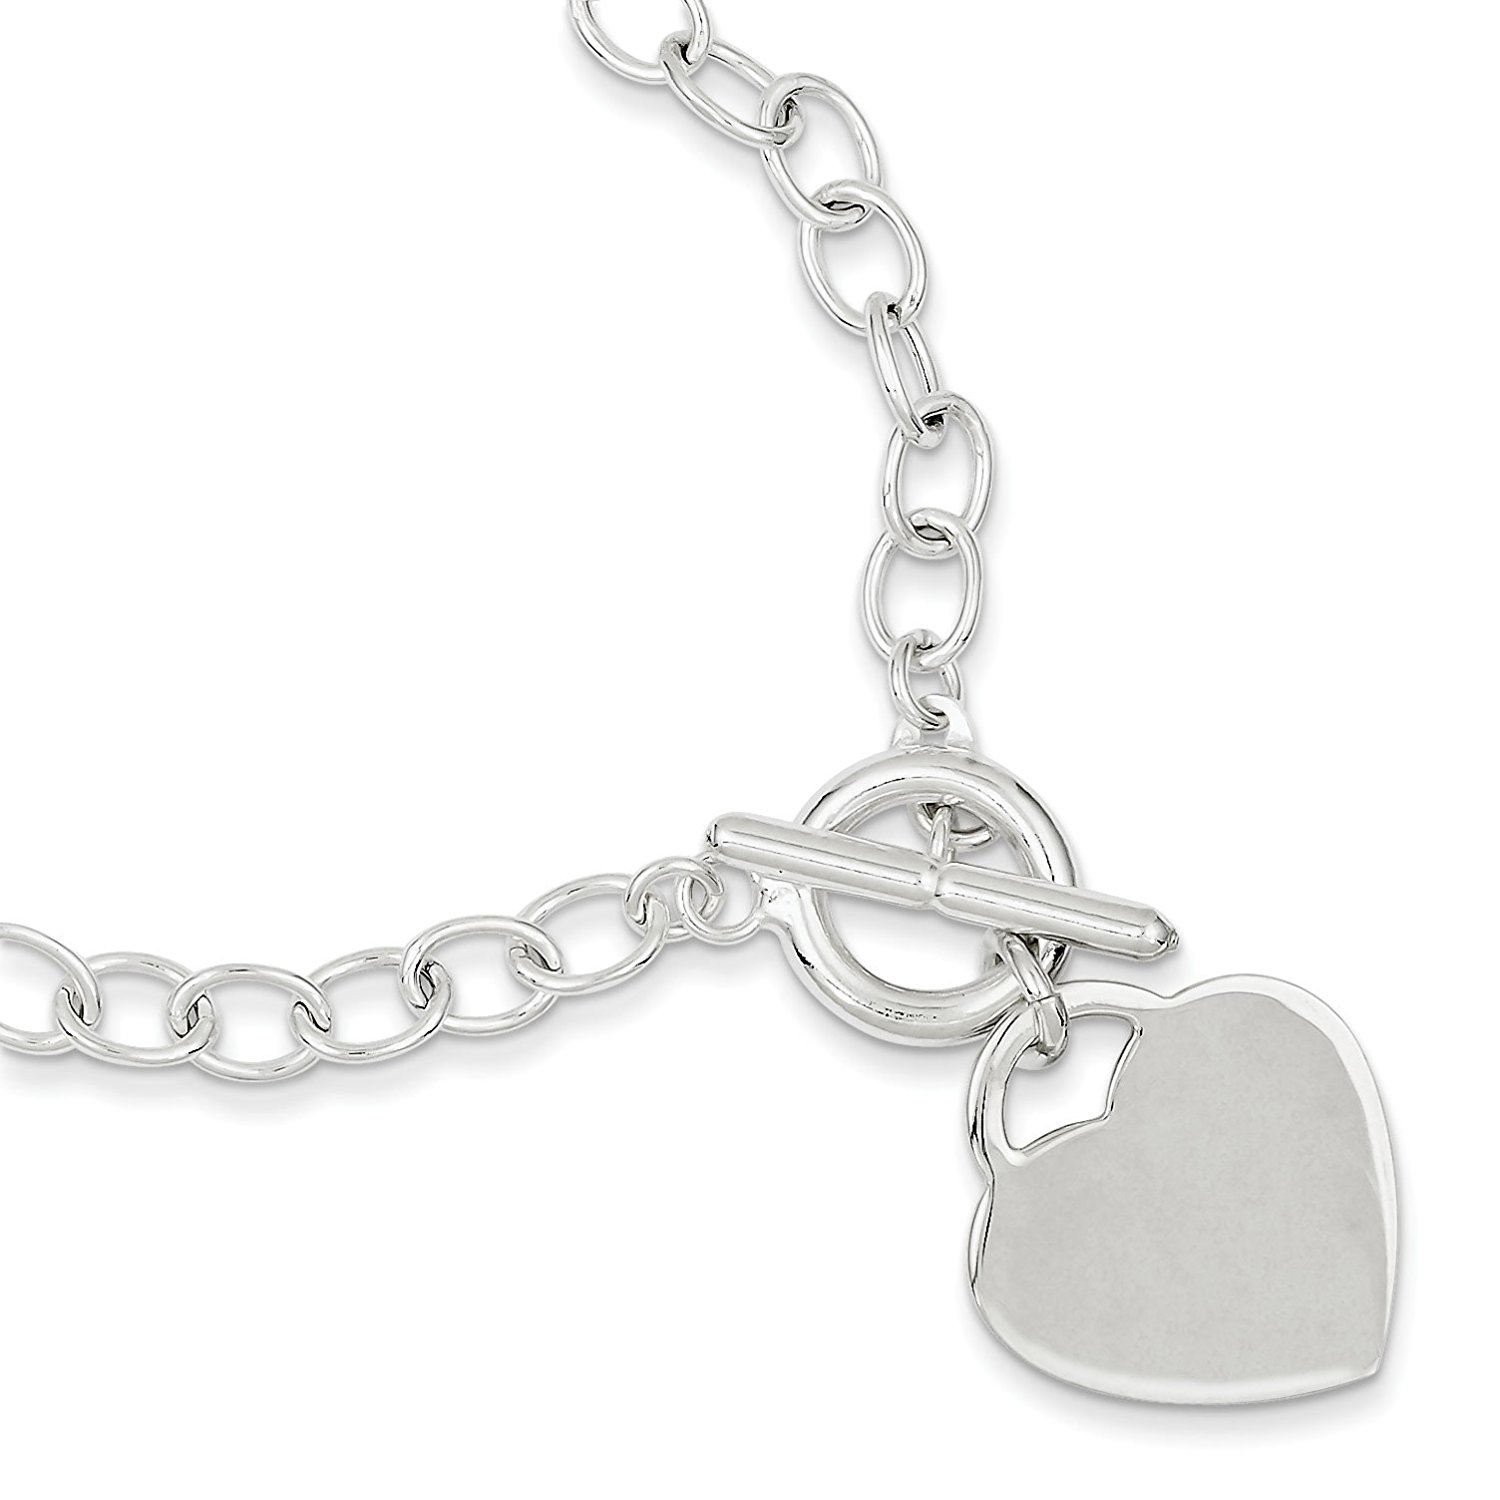 Sterling Silver Oval Link Heart Bracelet - 7.5 Inches Long